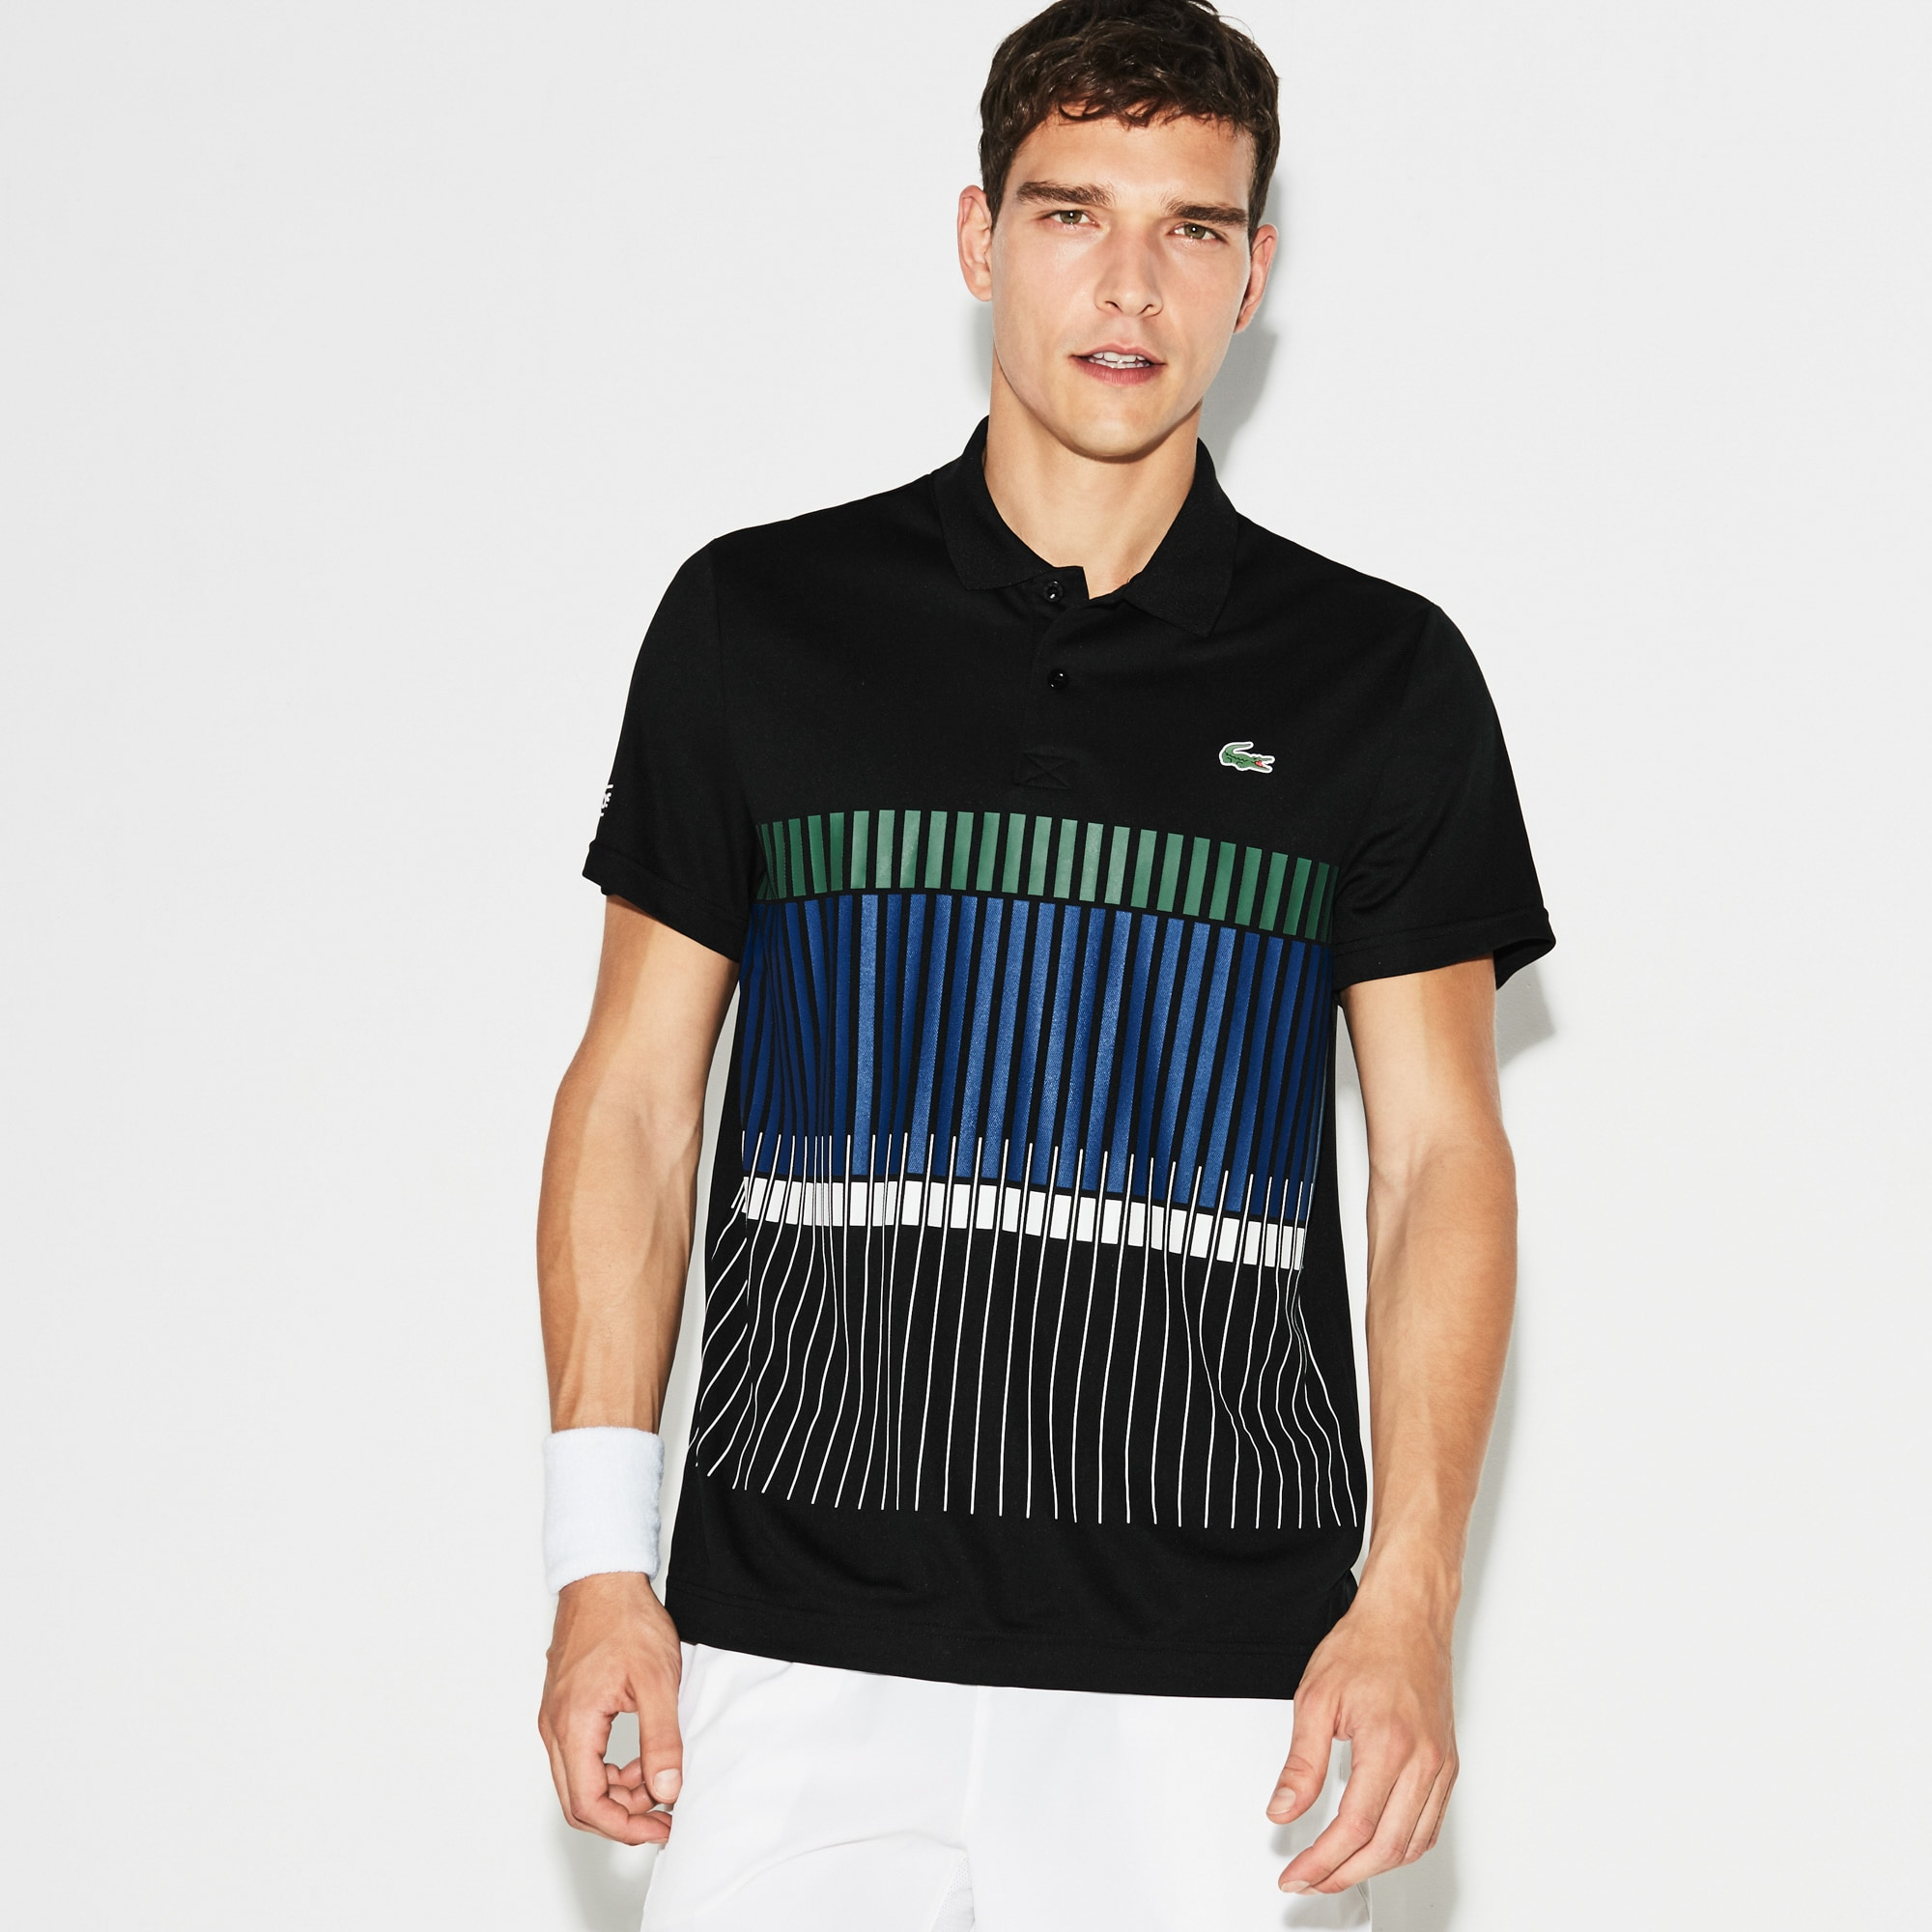 Polo Lacoste Collection for Novak Djokovic - Exclusive Clay Edition